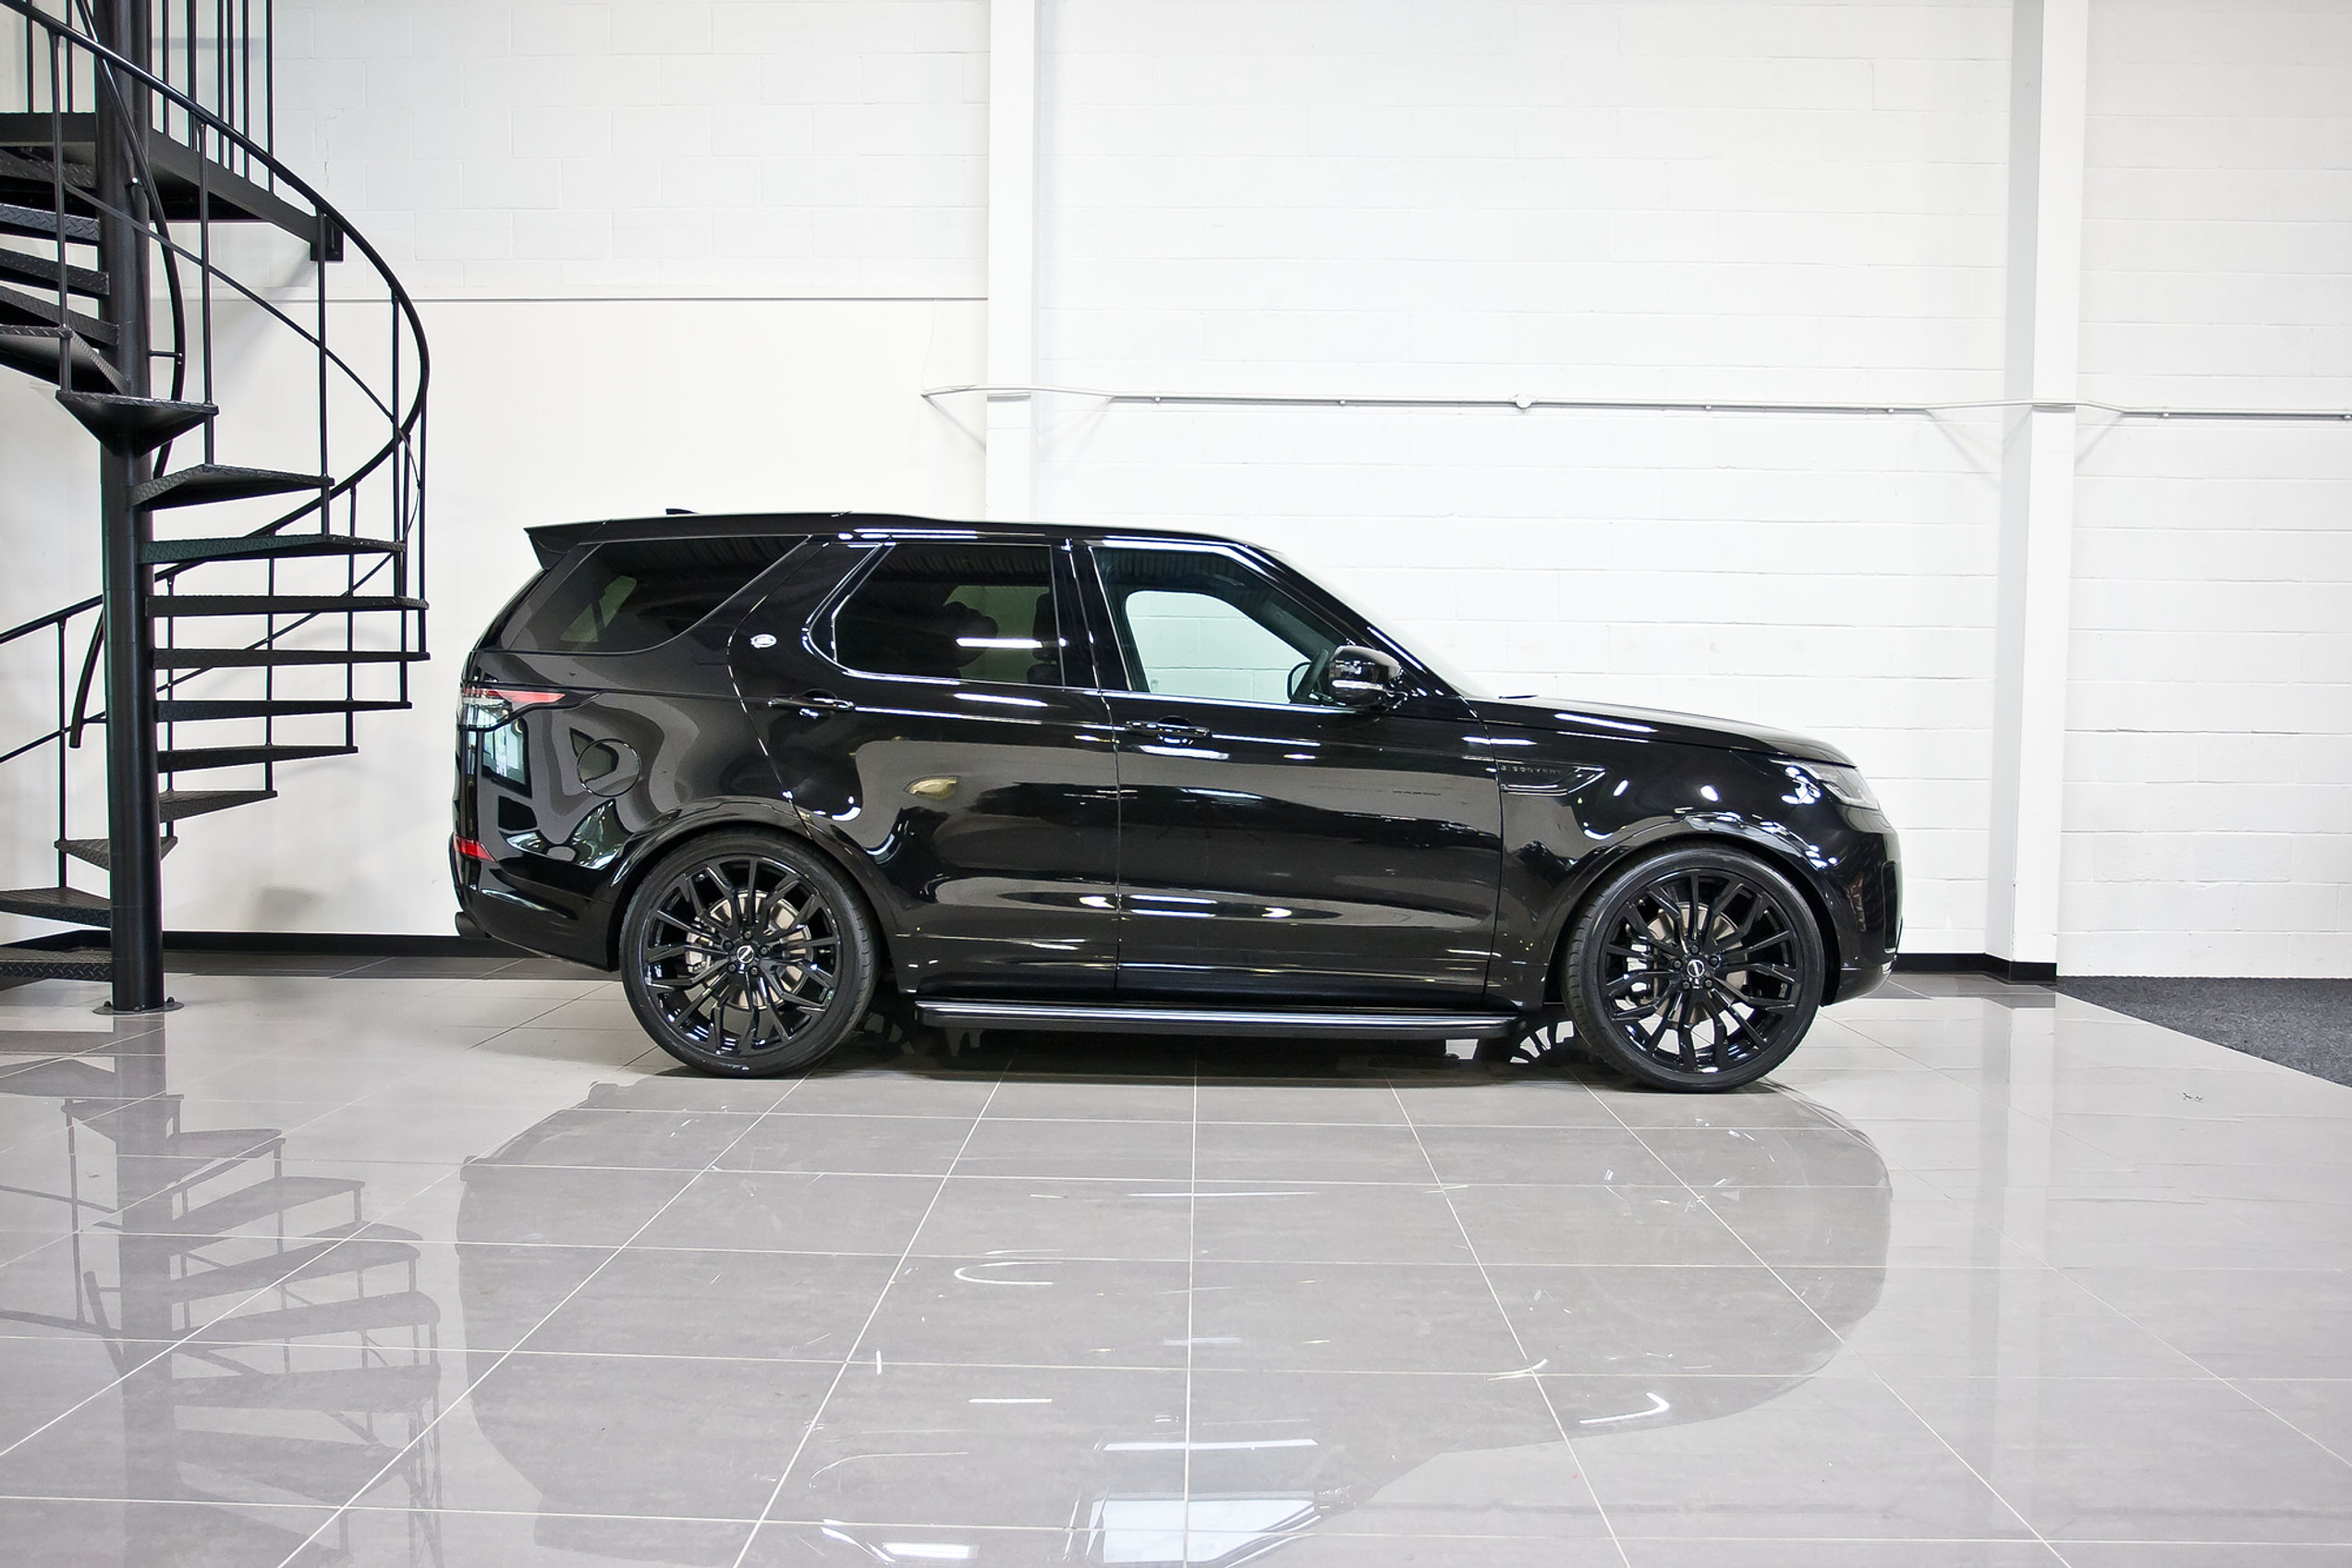 Range Rover Discovery Sport >> URBAN AUTOMOTIVE - MODIFIER OF LUXURY SPORTS UTILITY VEHICLES | TAILORED GALLERY